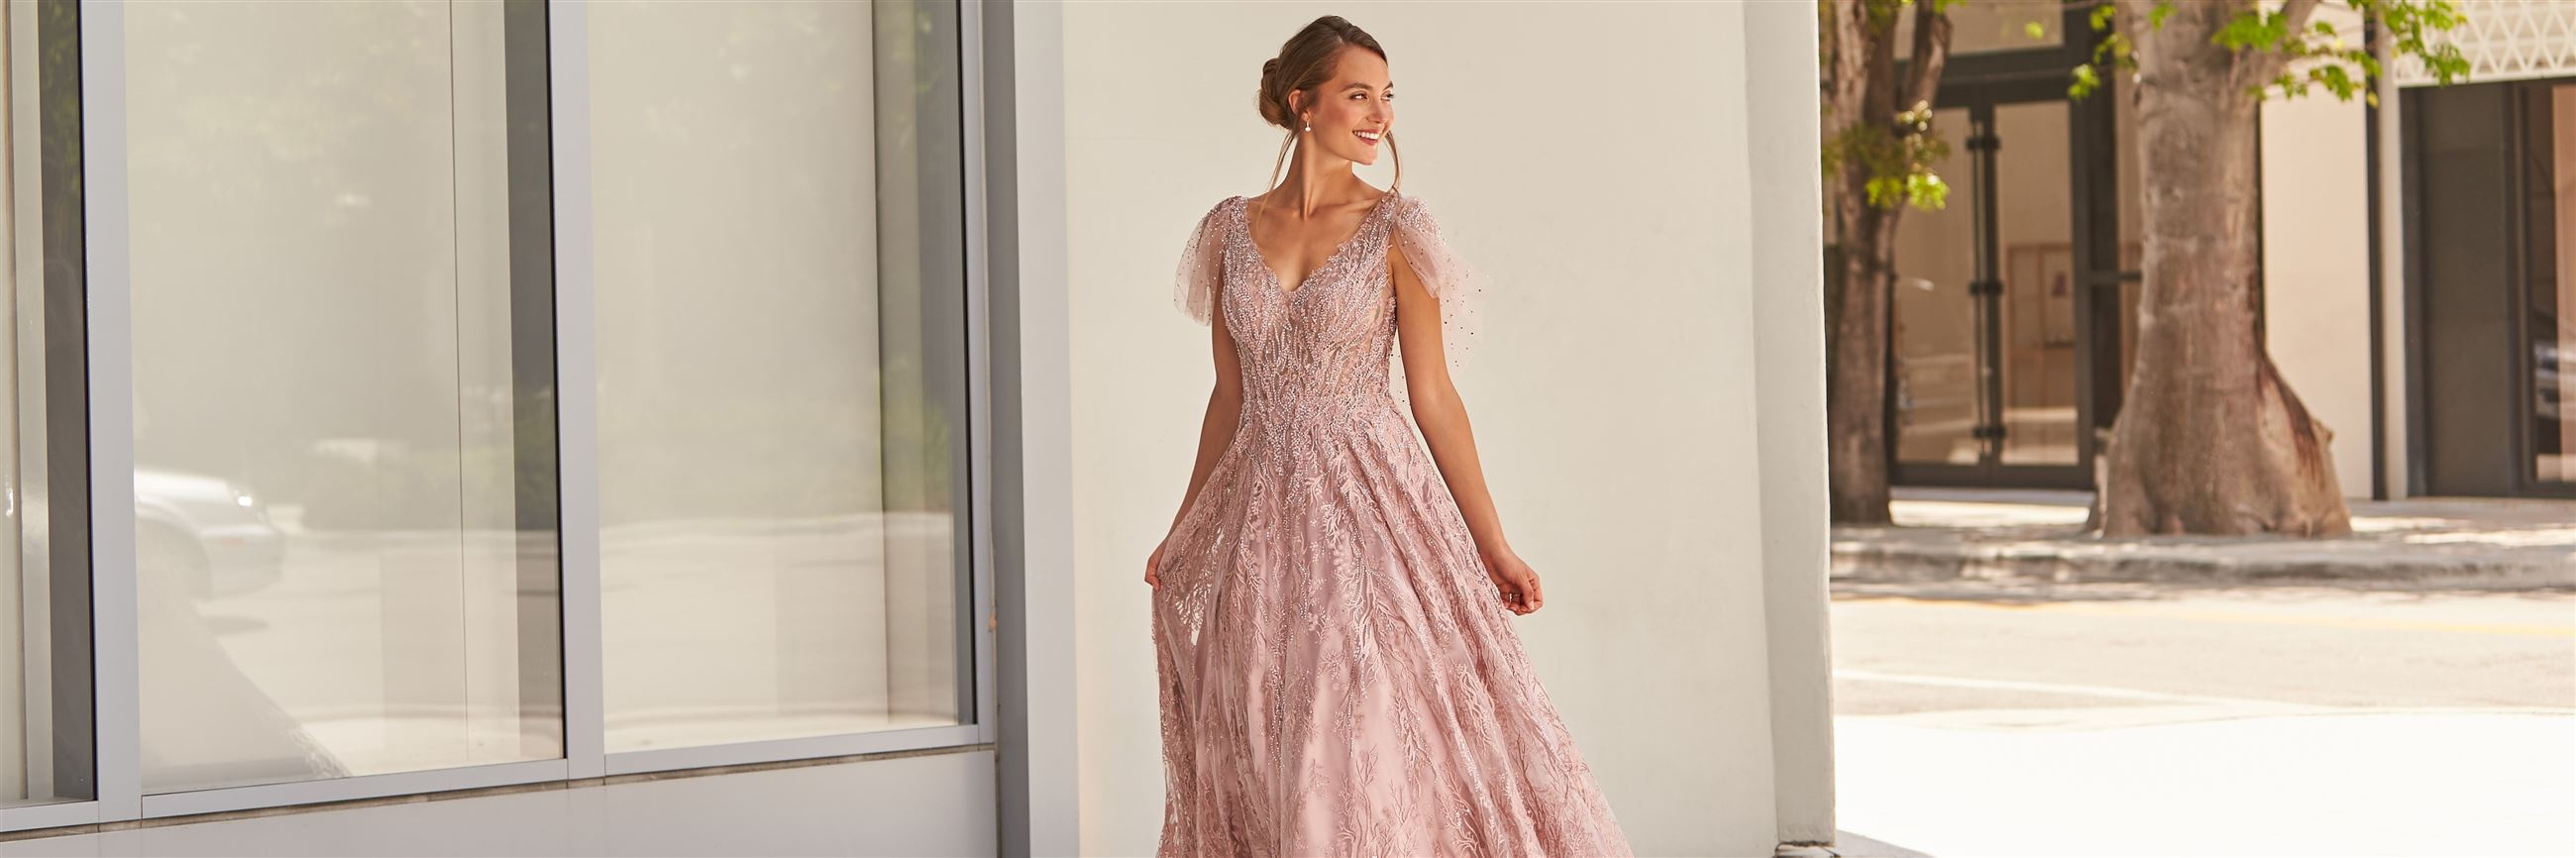 Model wearing pale pink mother of the bride dress